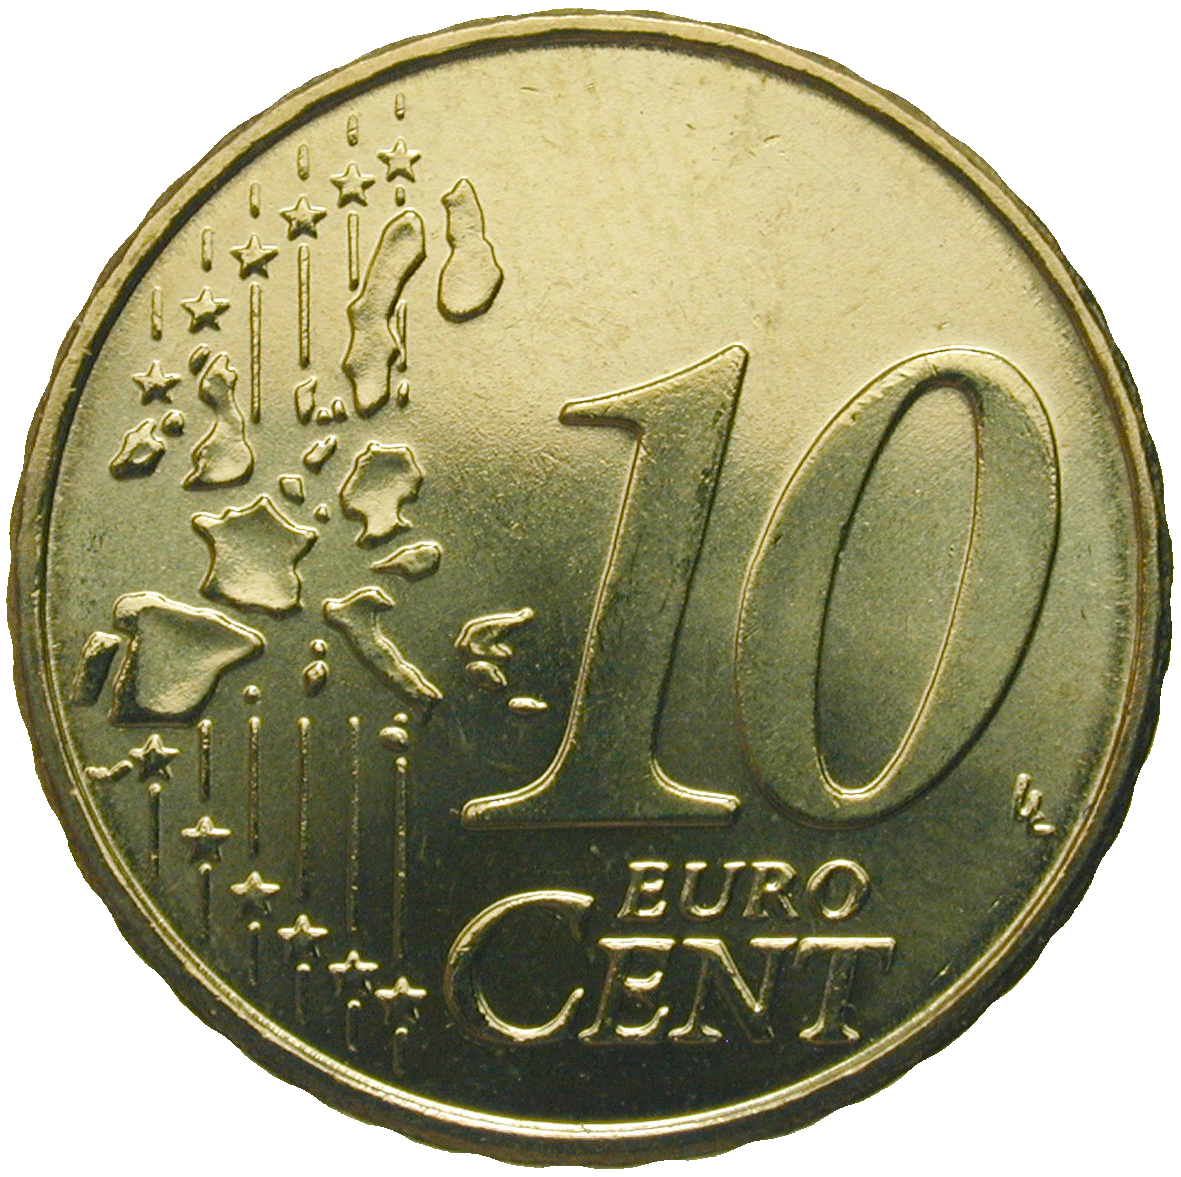 Republic of Greece, 10 Euro Cent 2002 (reverse)